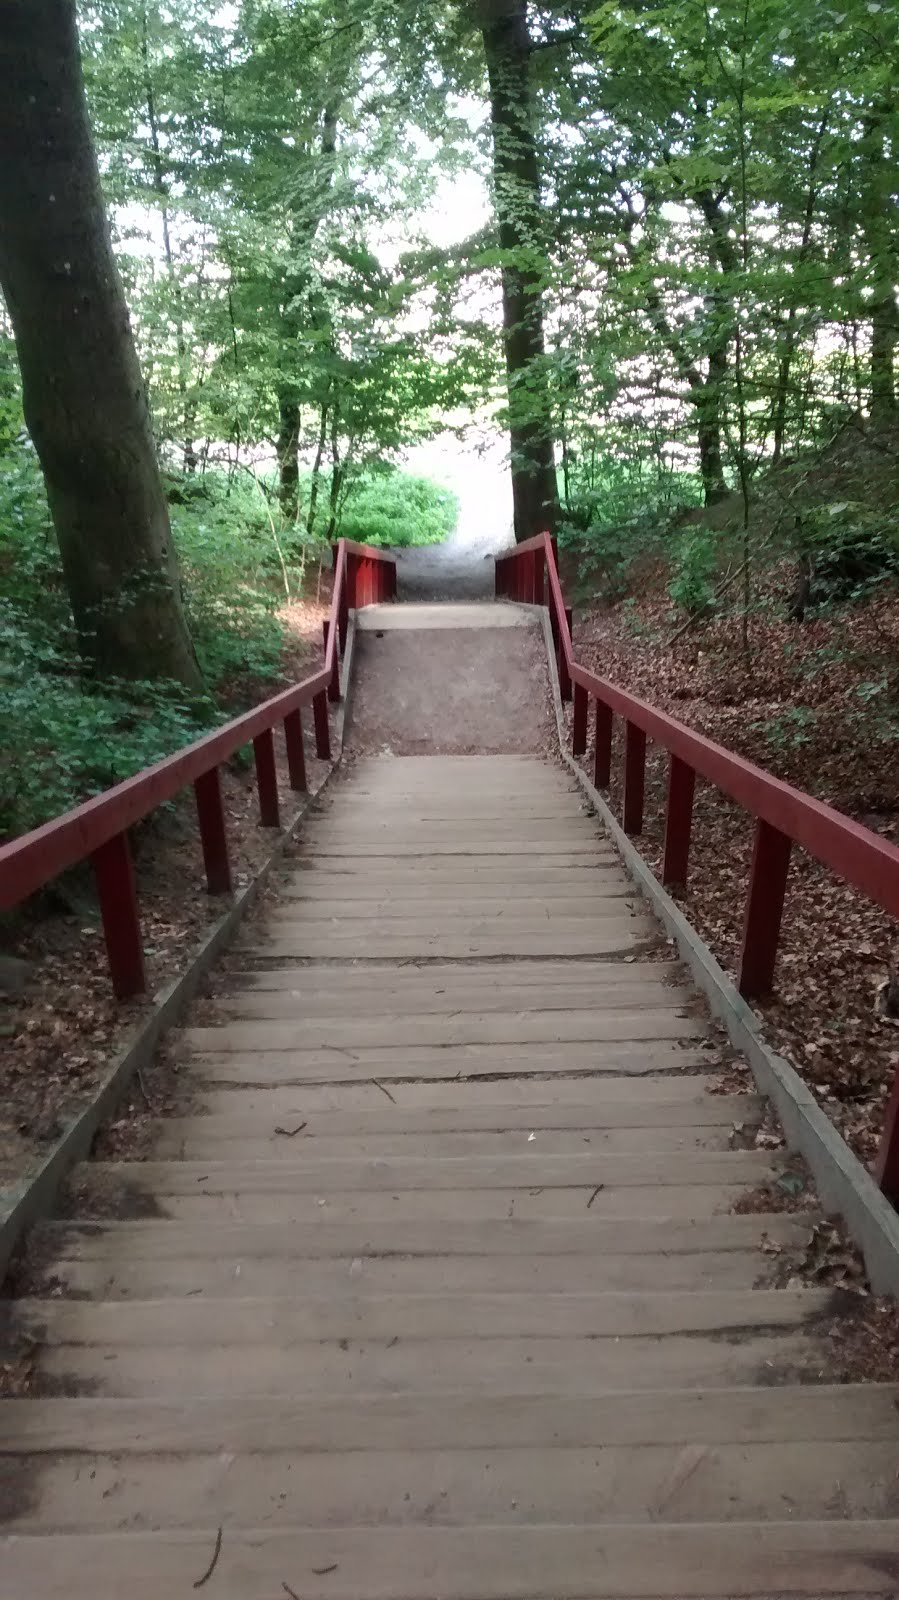 The stairs down to Ballehage Beach, Aarhus